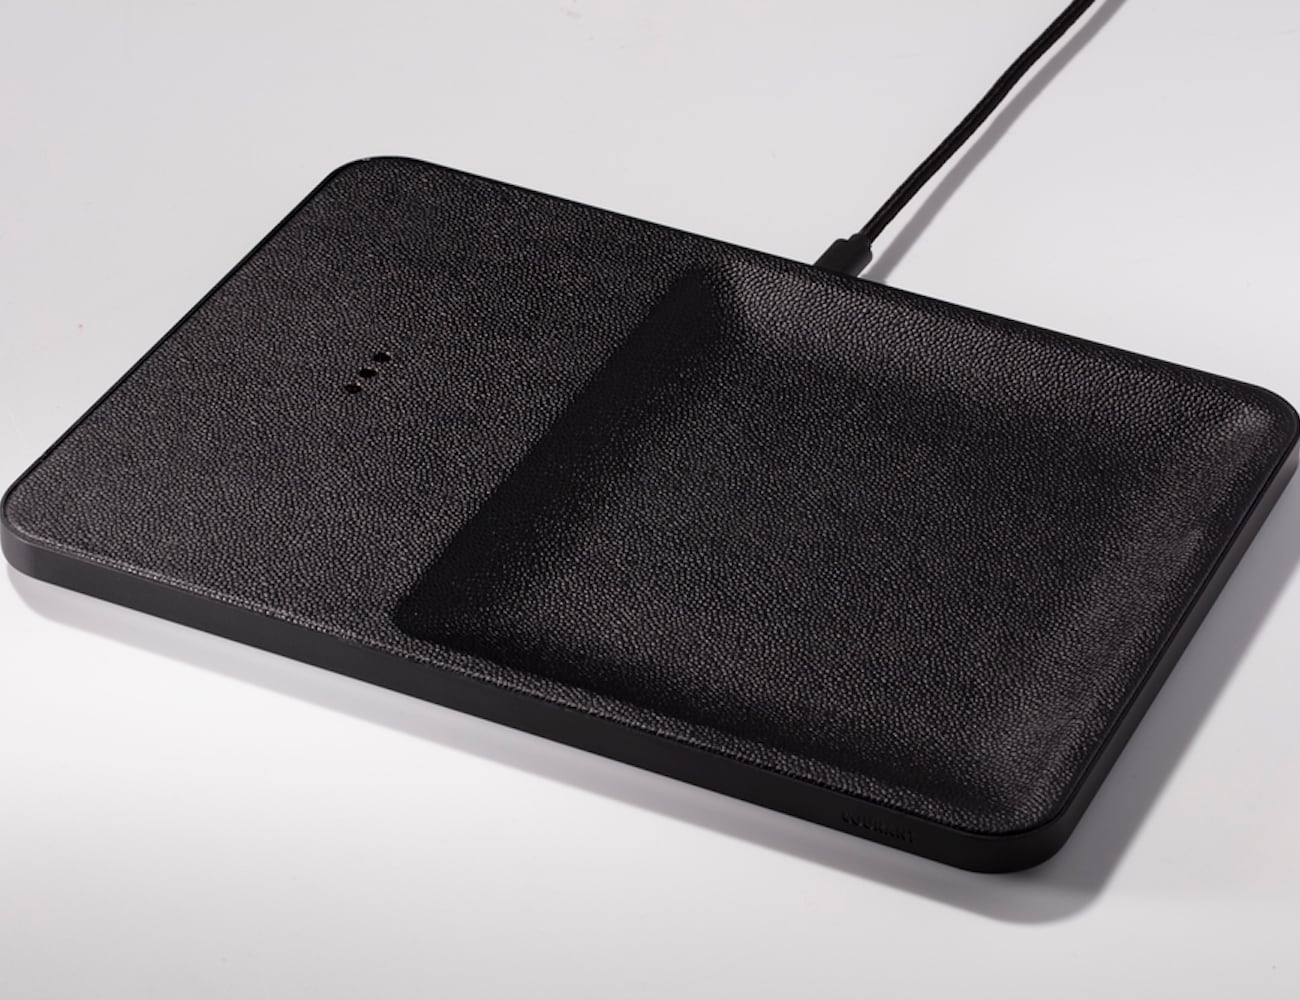 Courant Catch 3 Aluminum Wireless Charger